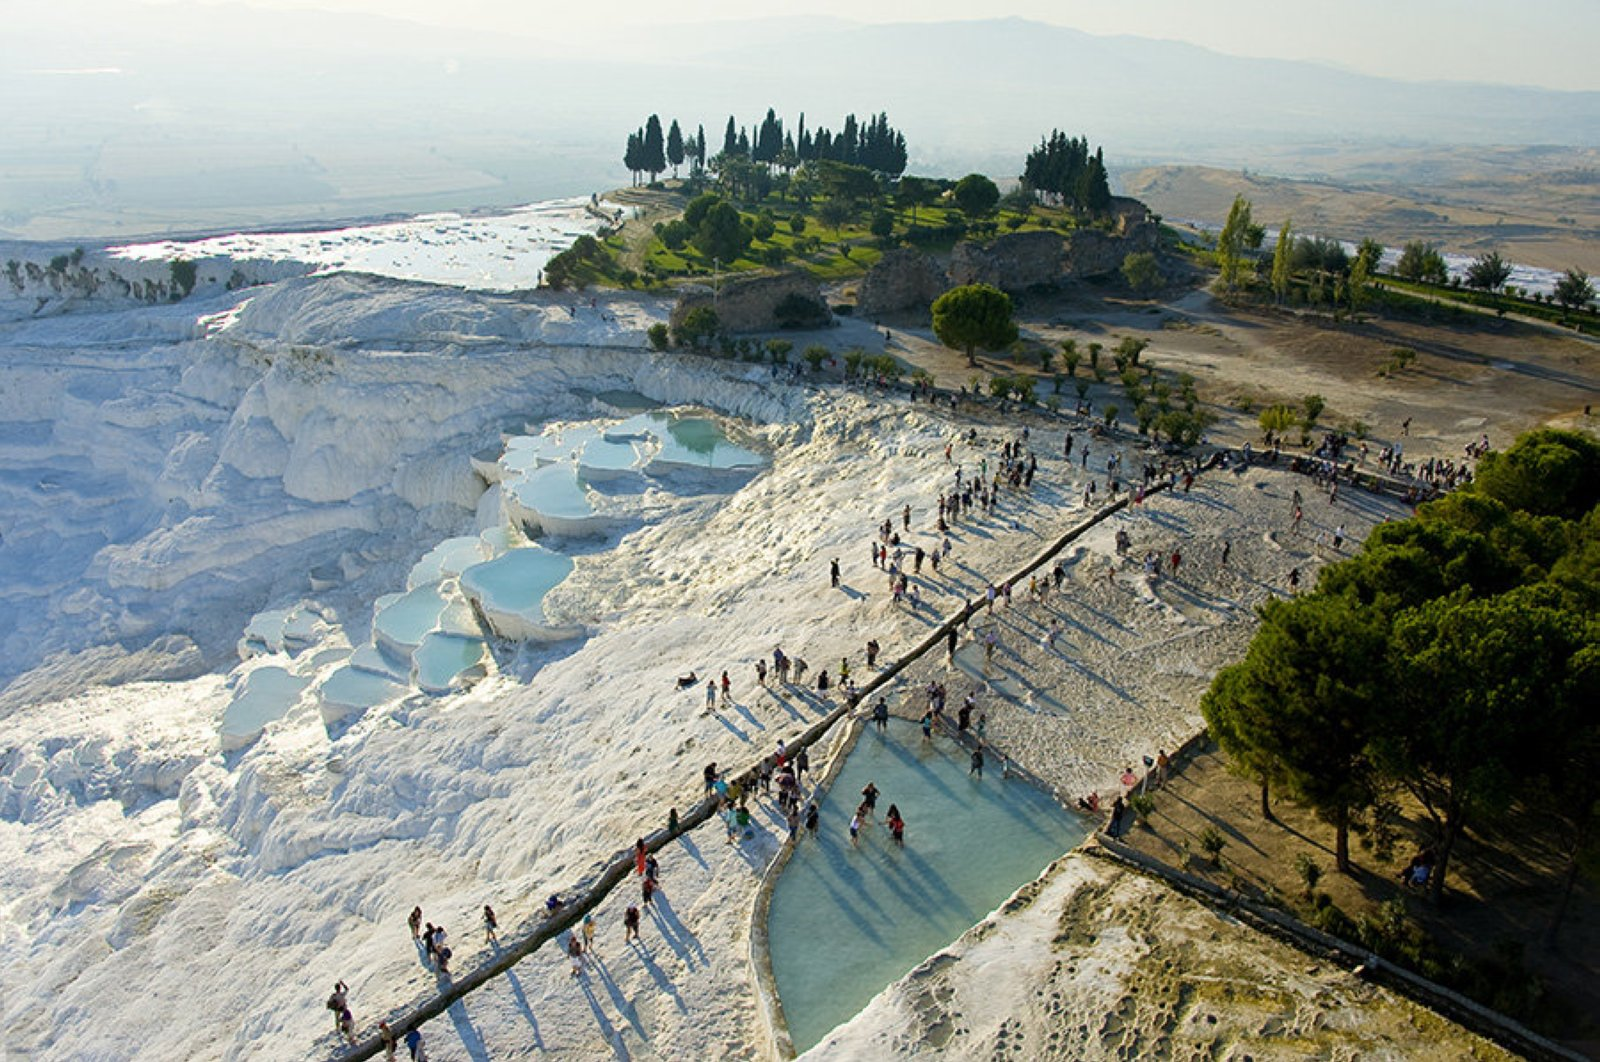 The Pamukkale travertines in western Turkey's Denizli province are an important health tourism destination of Turkey, with their thermal facilities that provide high-quality medical treatment to foreigners at affordable prices. (File Photo)